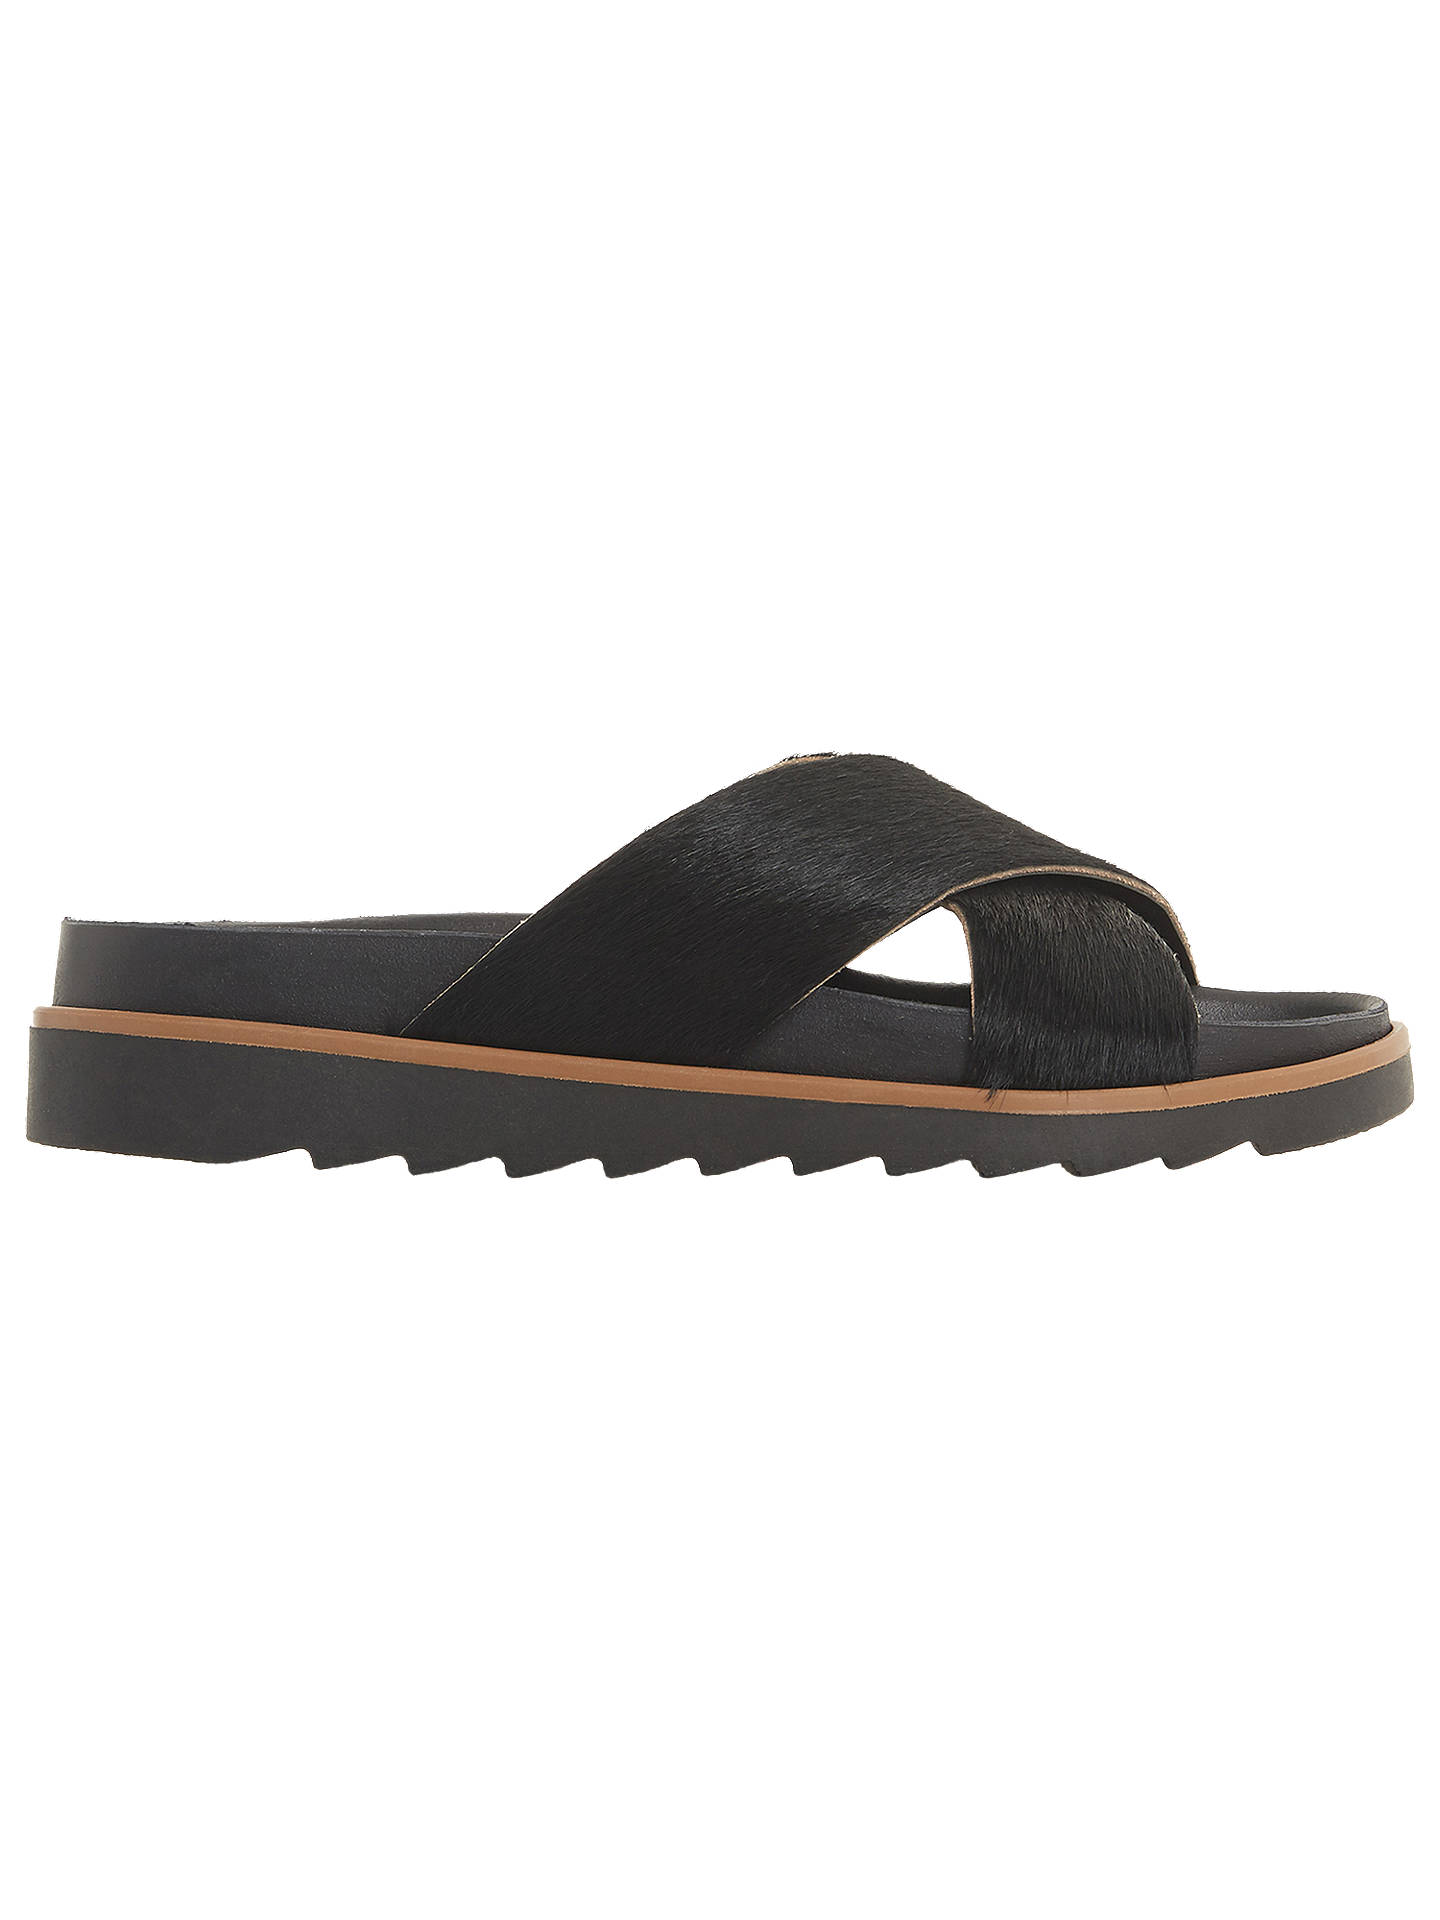 BuyBertie Lyberty Cross Strap Sandals, Black, 3 Online at johnlewis.com